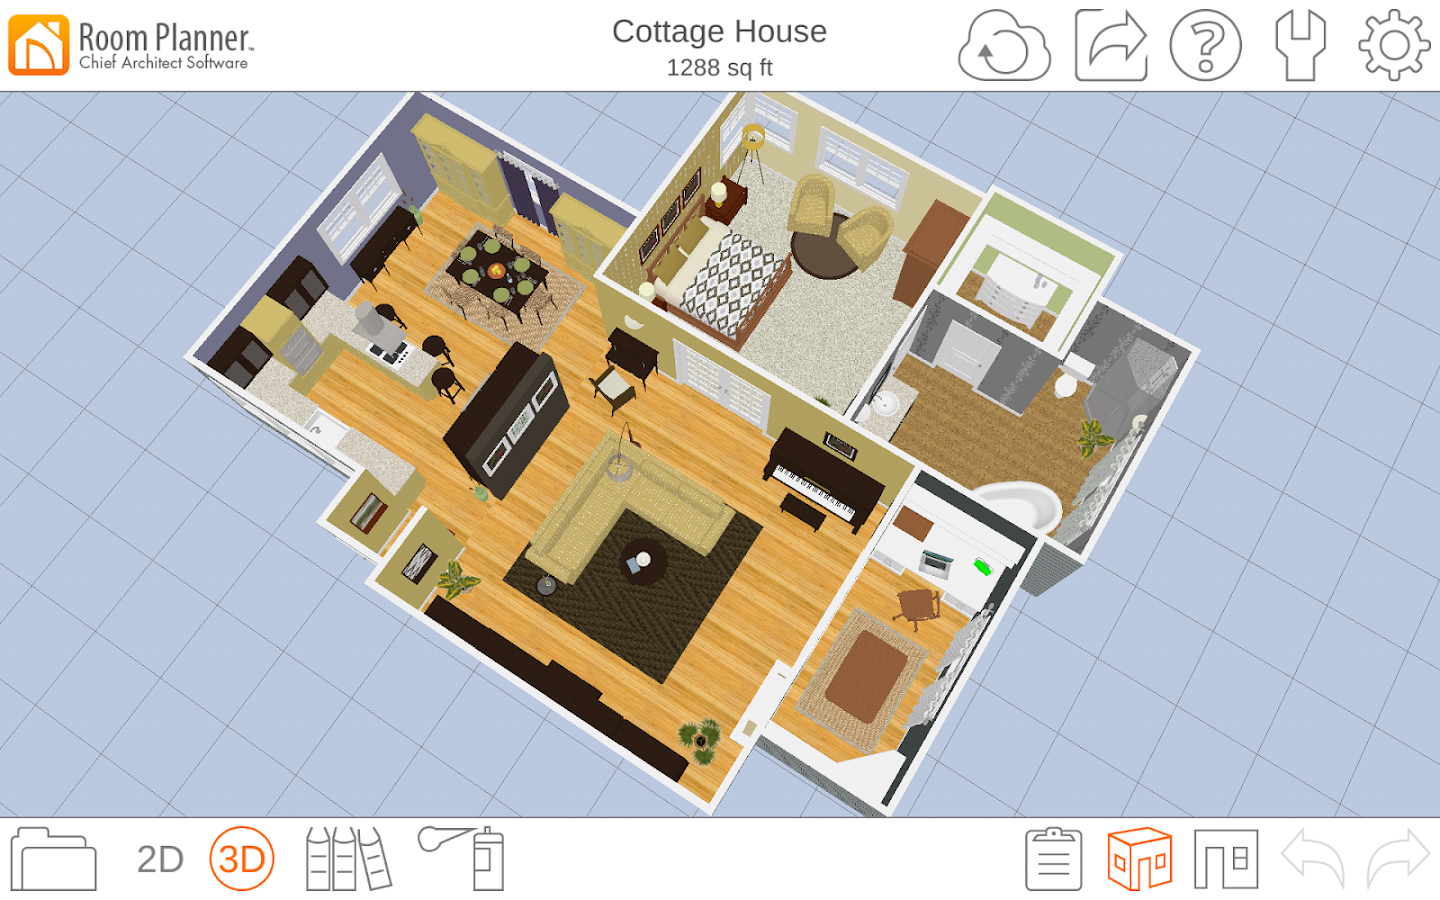 Room planner home design android apps on google play Plan my room layout